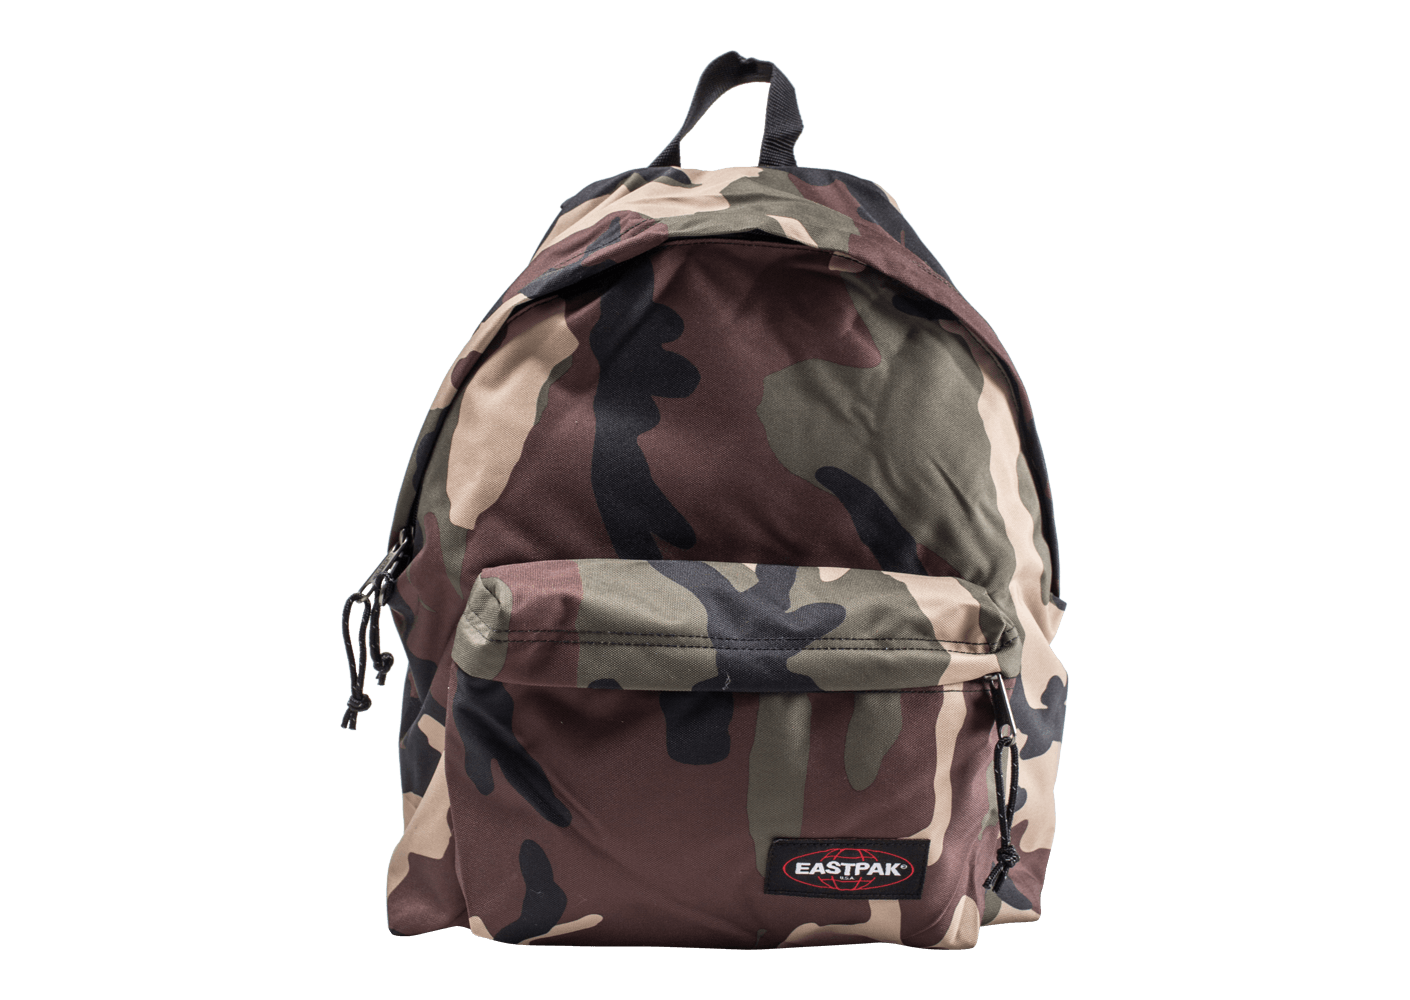 eastpak sac dos padded pak 39 r motif camouflage sacs sacoches chausport. Black Bedroom Furniture Sets. Home Design Ideas